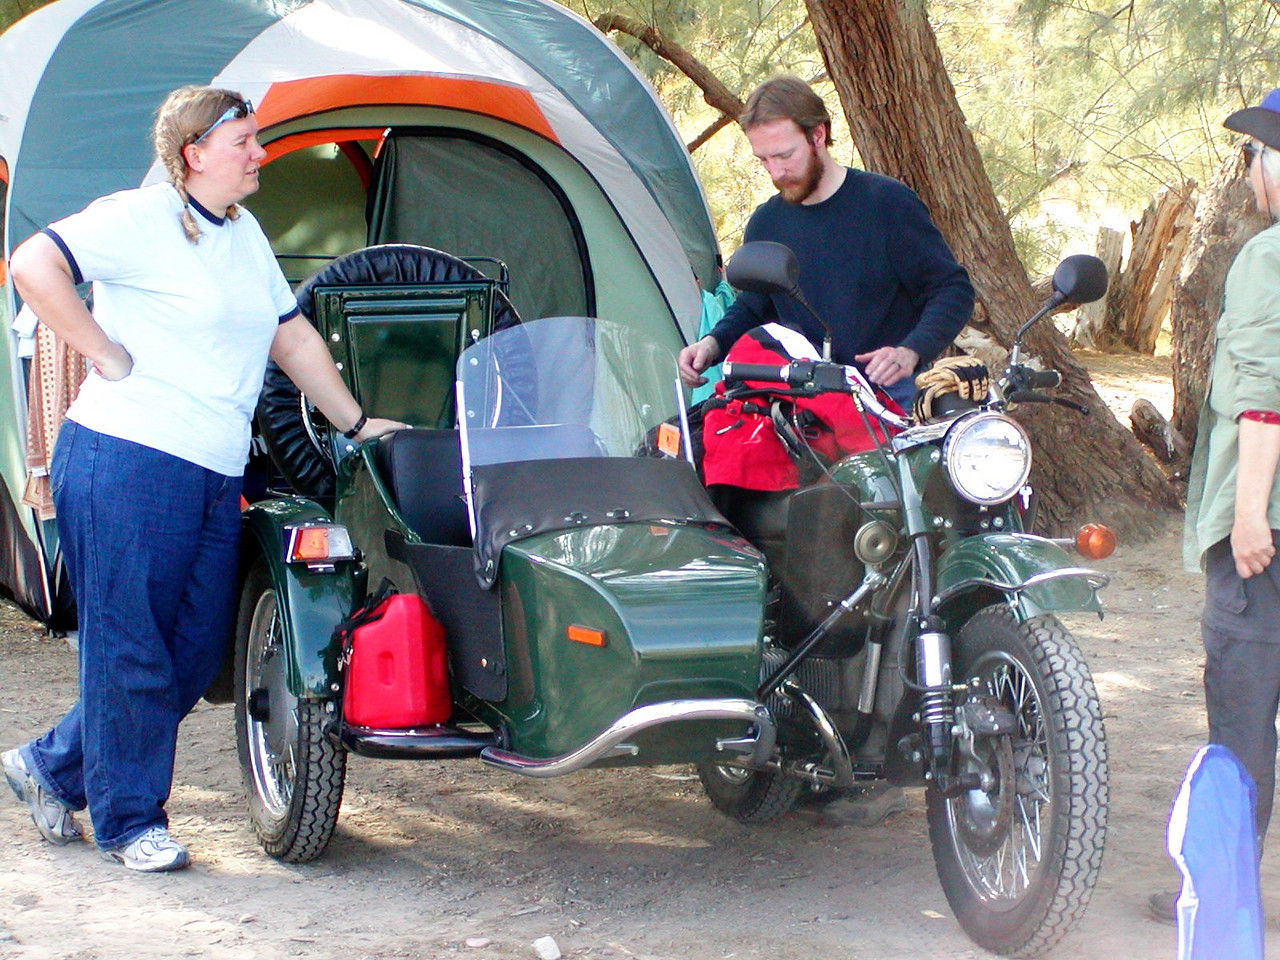 Sarah Palmer and Warren Barnes with their new Ural sidecar outfit